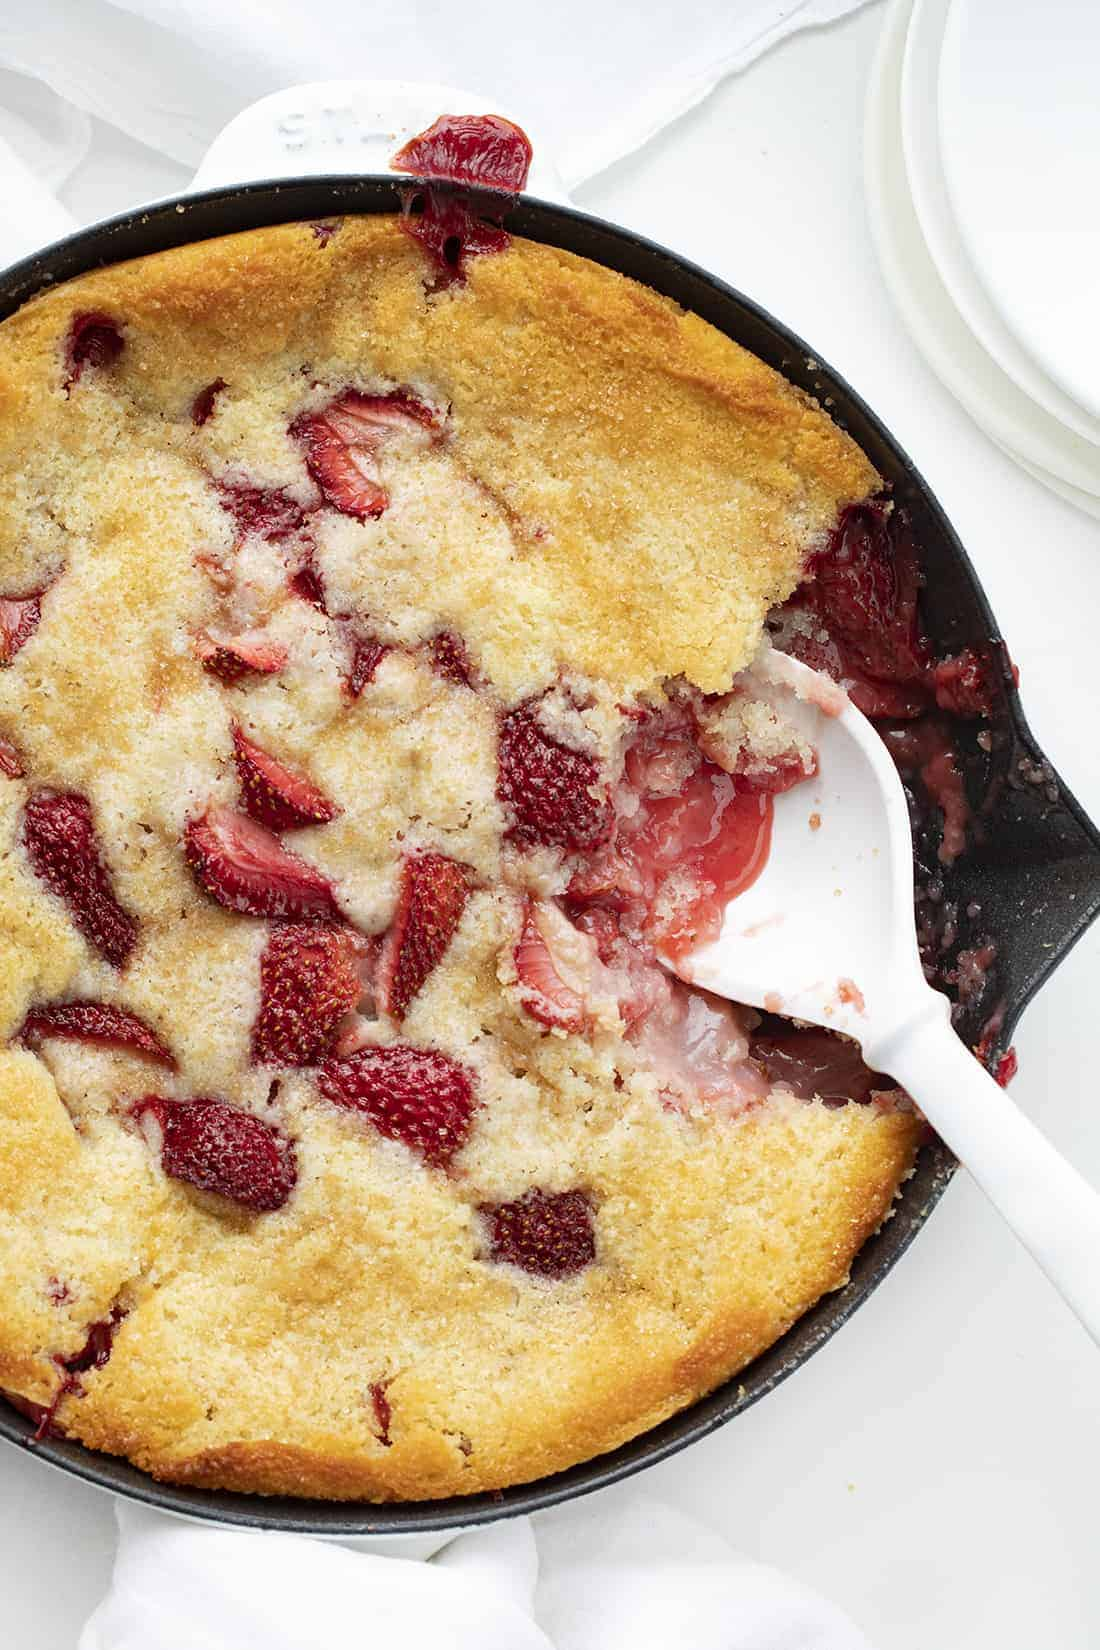 Skillet with Strawberry Cobbler